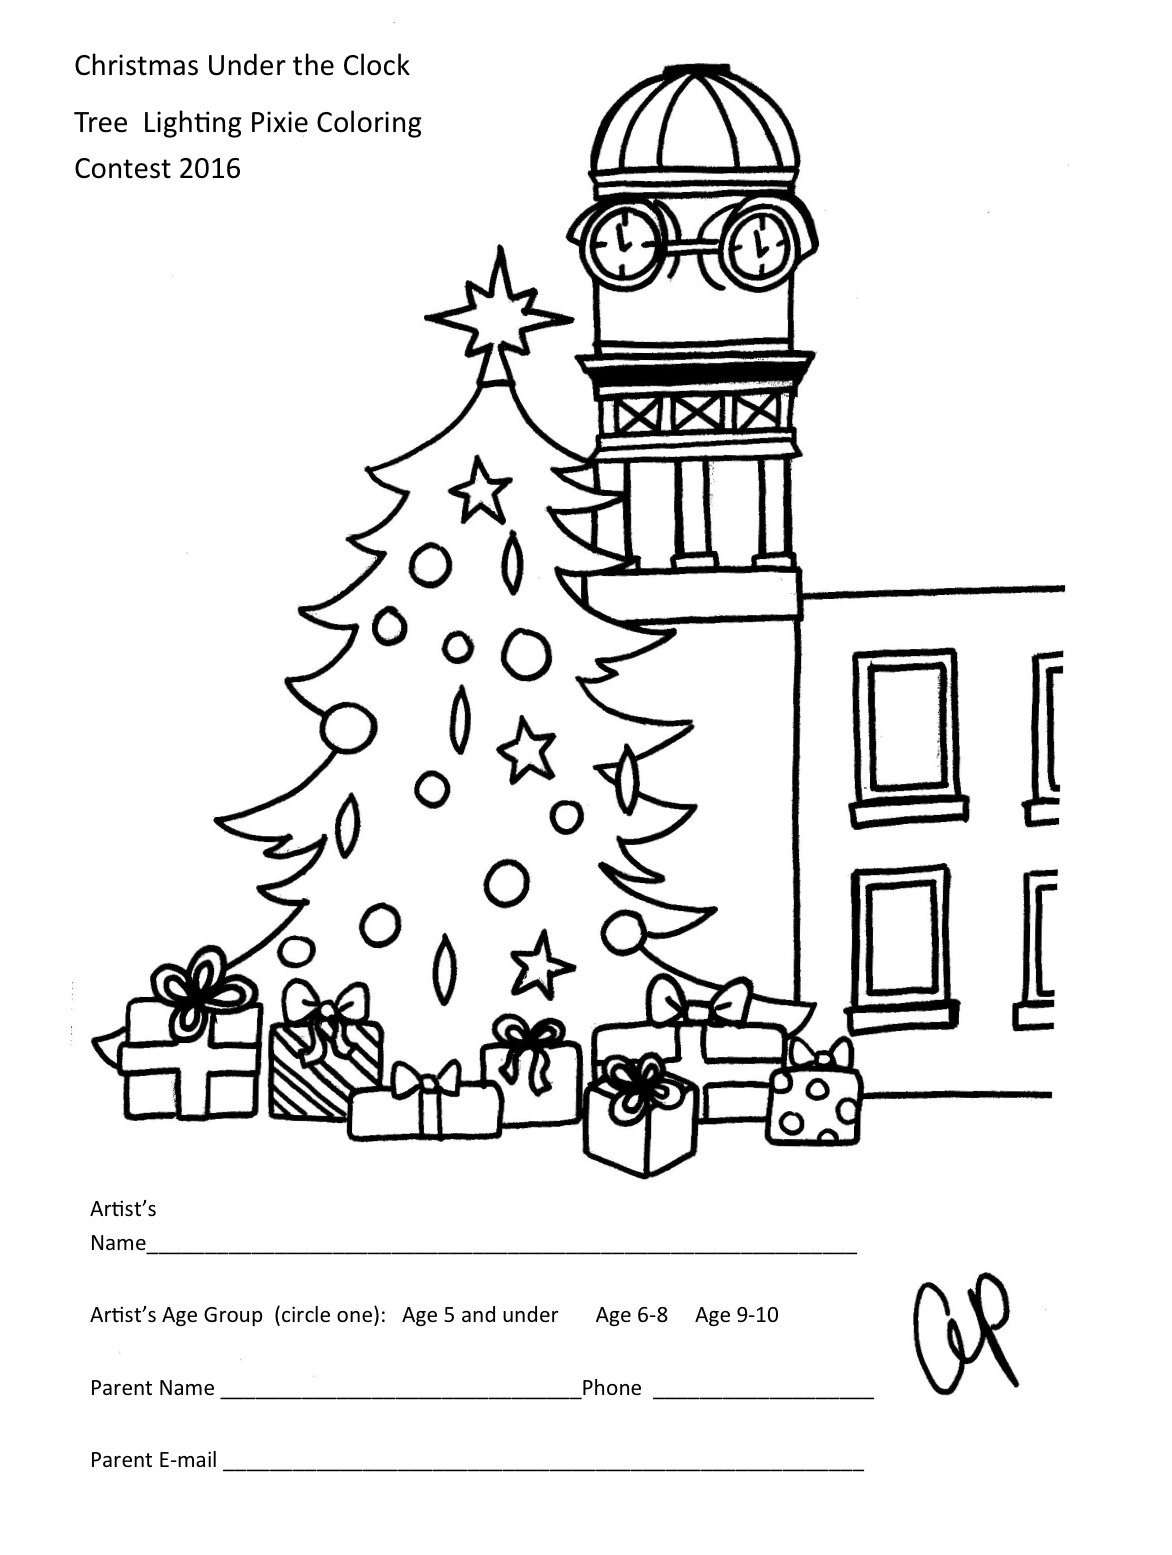 Contest Flyer Coloring Pages